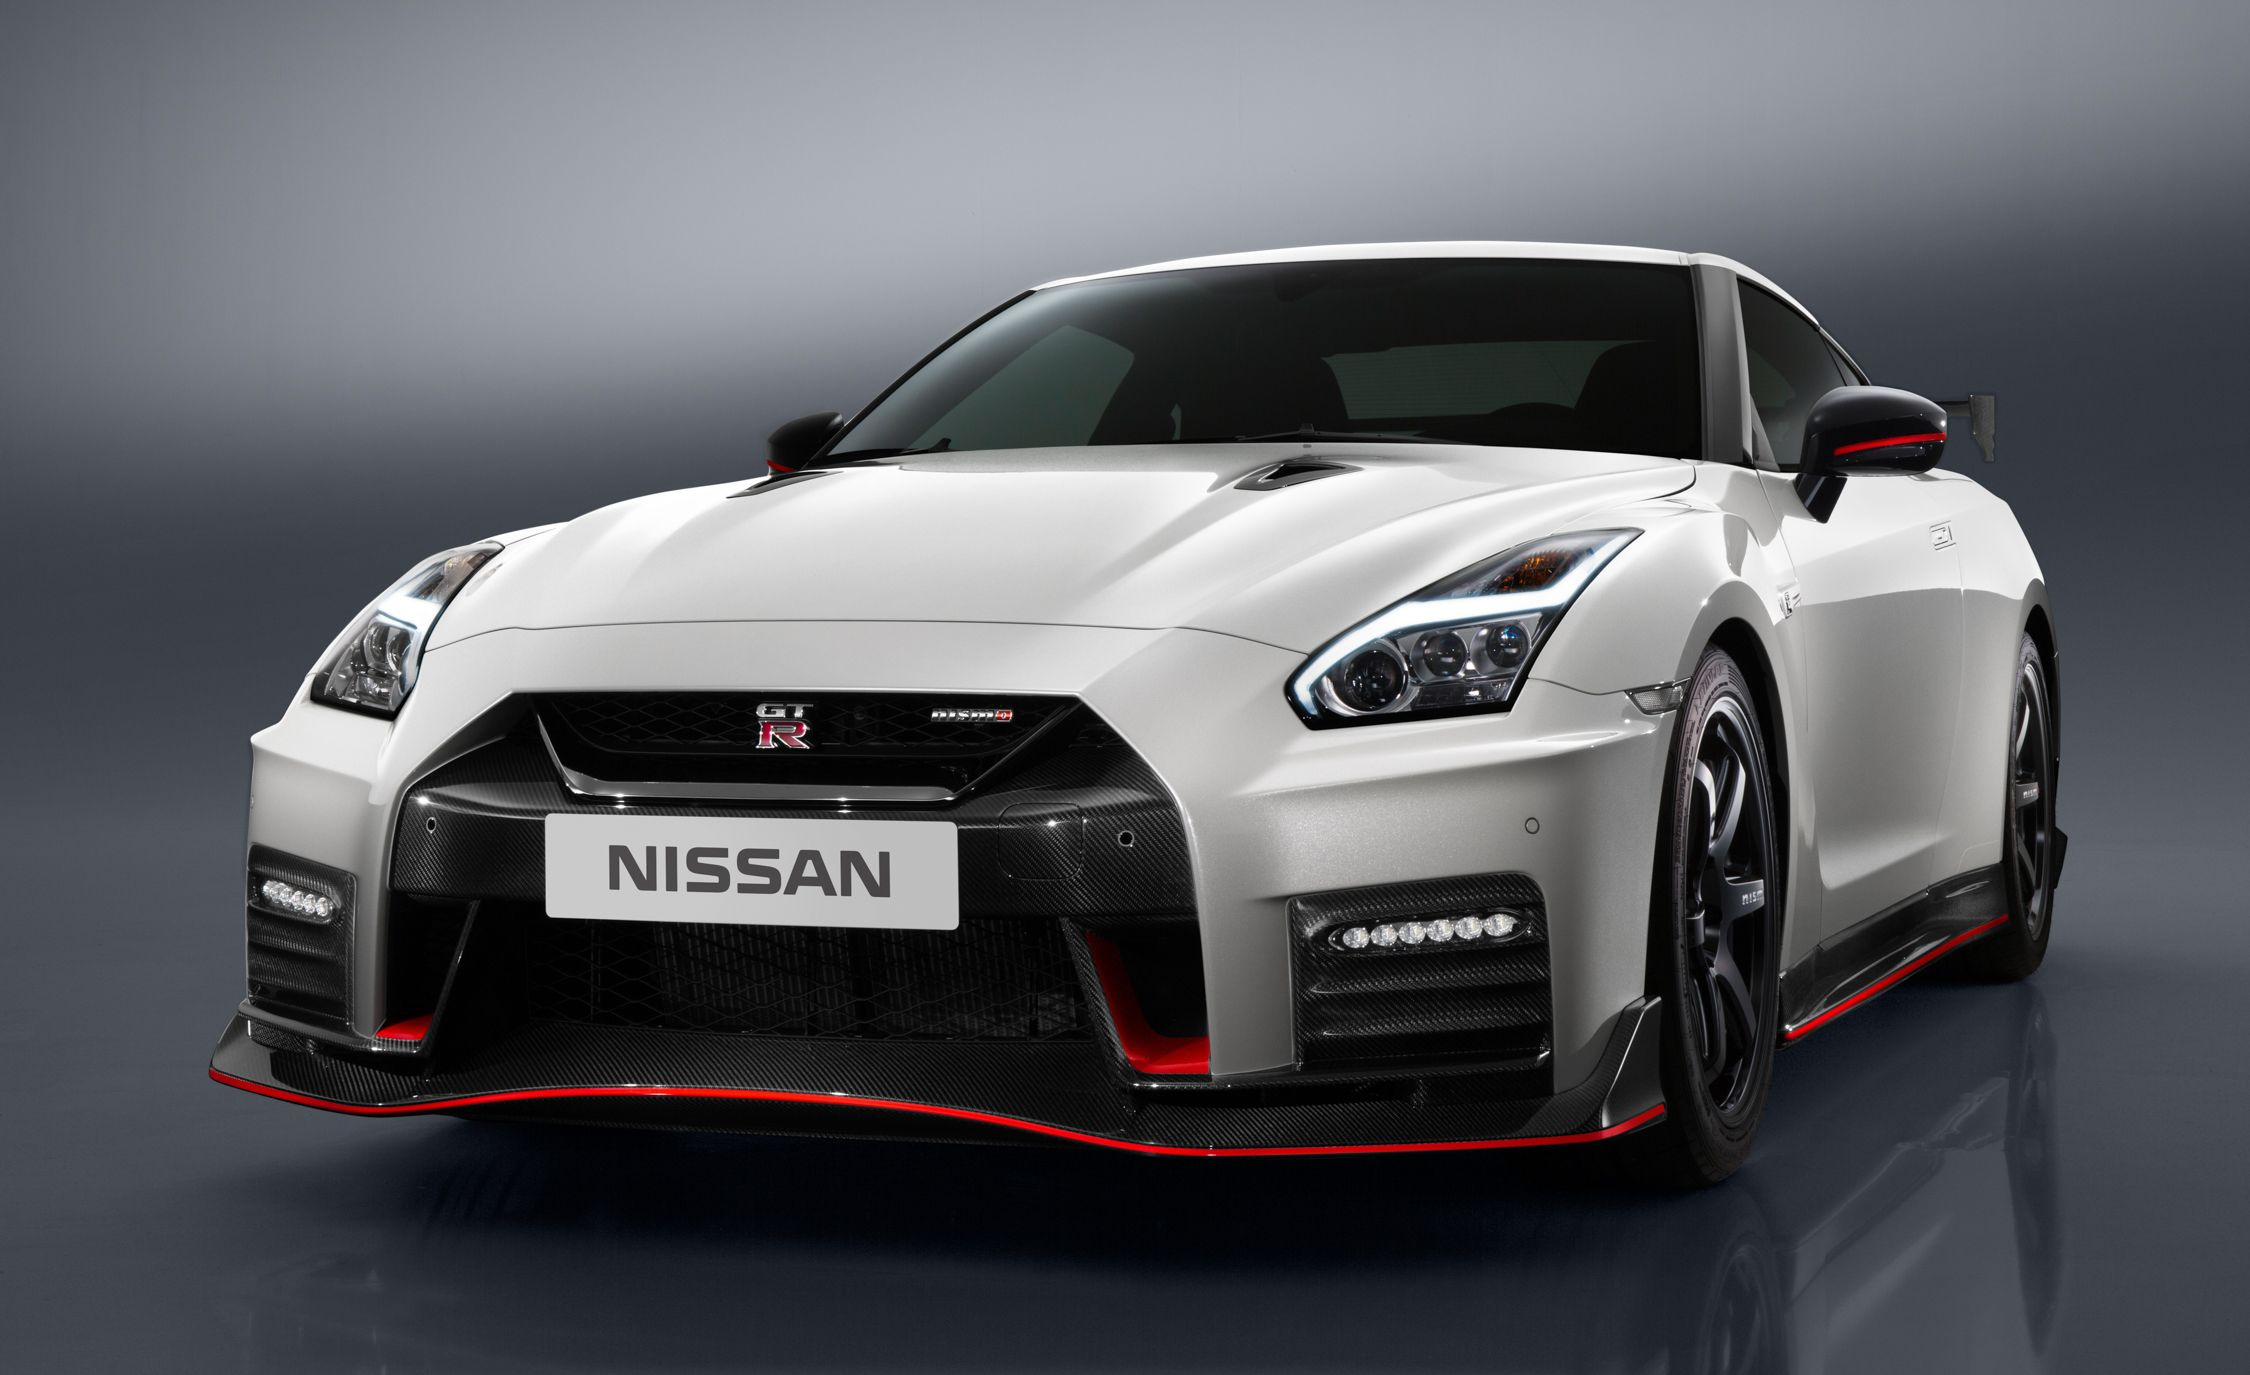 2017 Nissan Gt R Nismo Photos And Info News Car And Driver